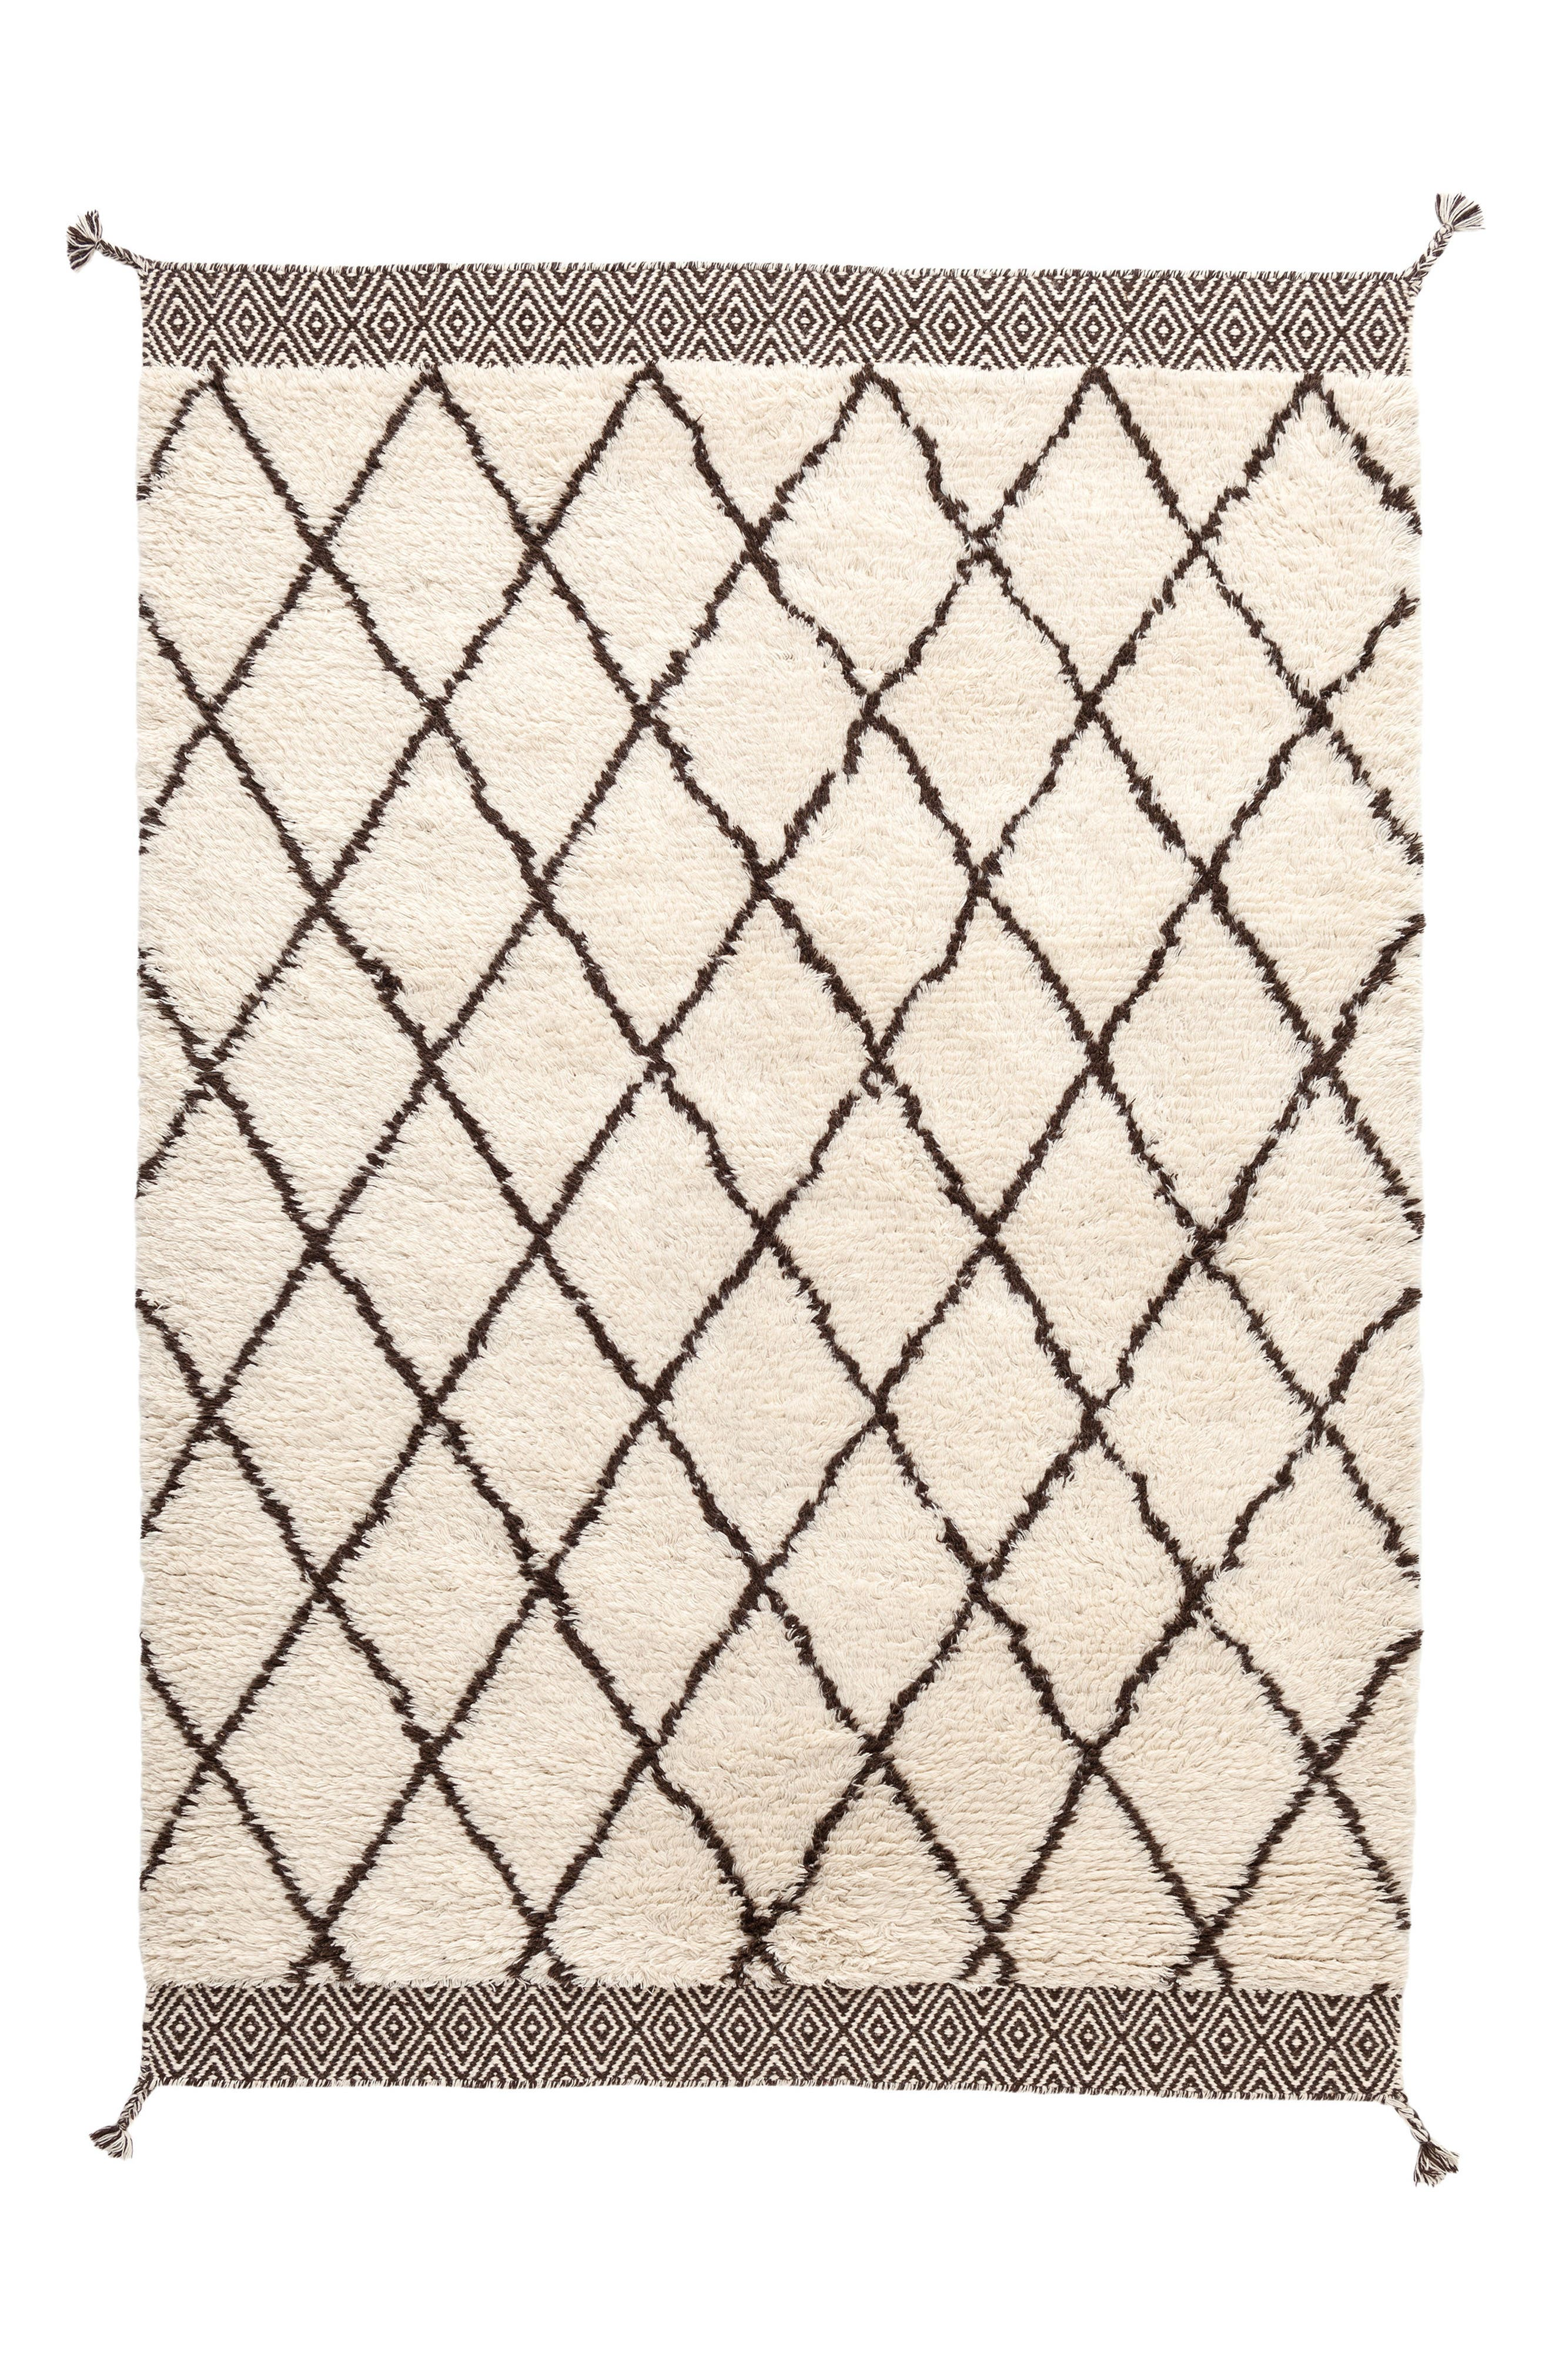 Geo Print Wool Rug,                         Main,                         color, IVORY/ GREY